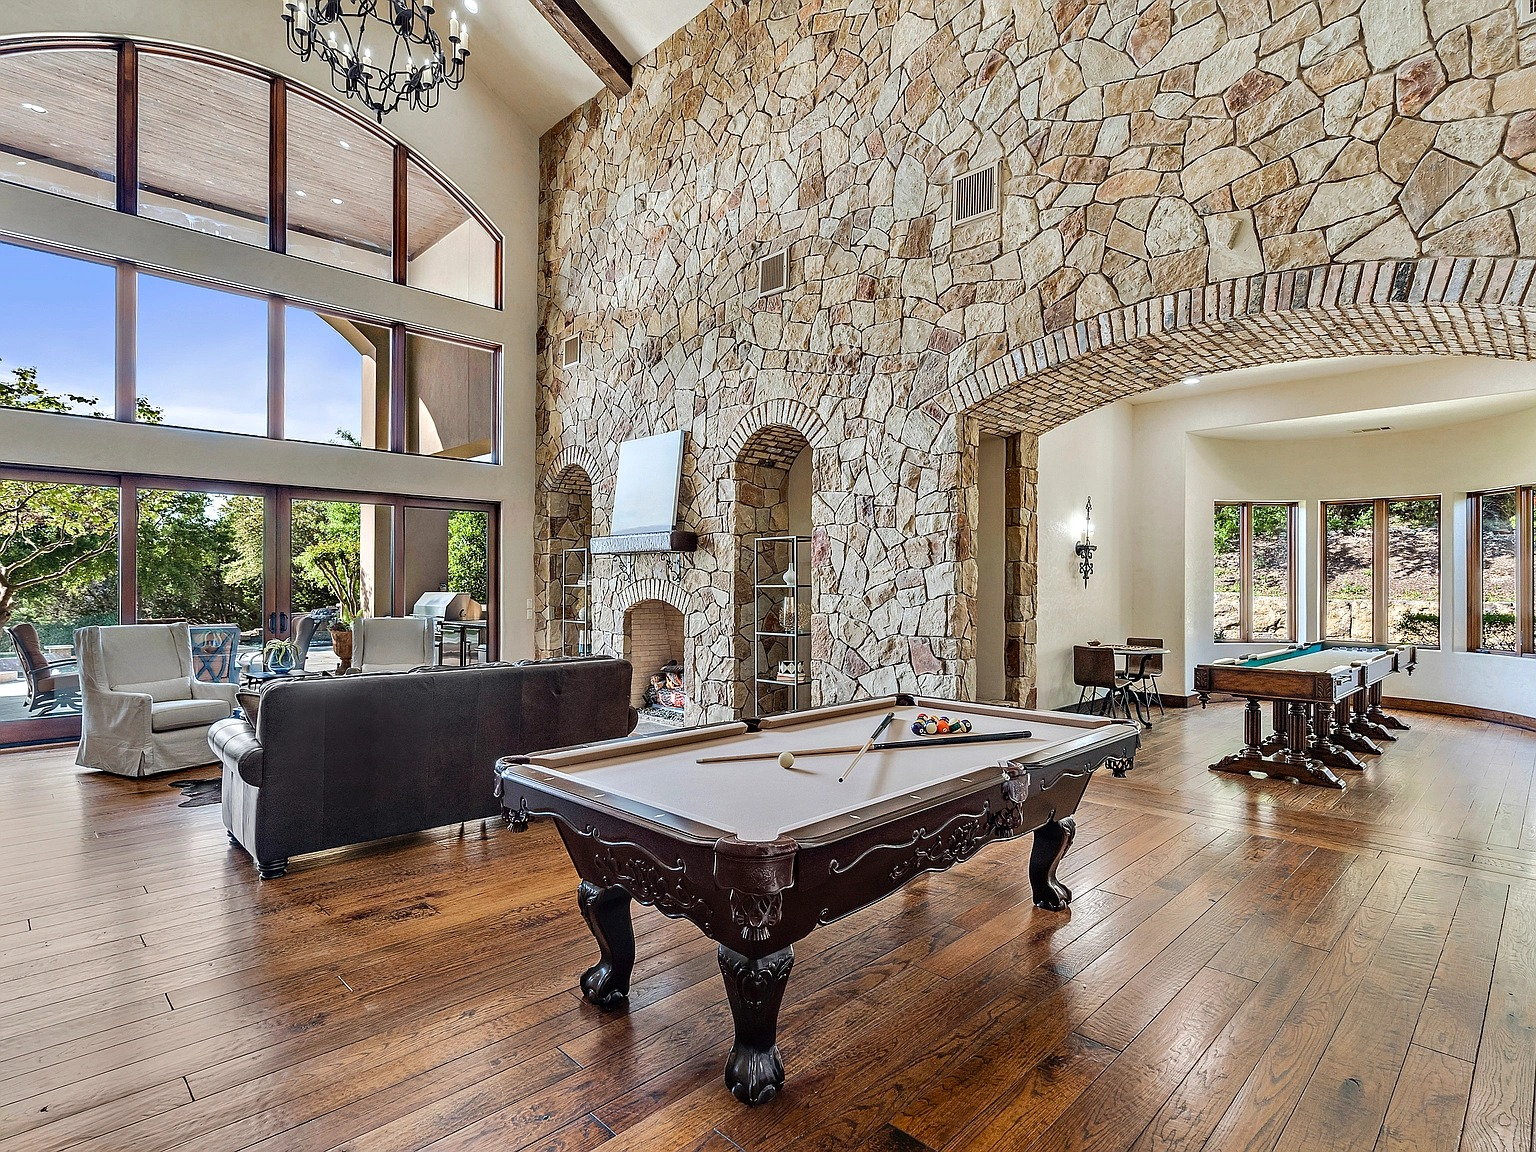 7915 Escala Dr, Austin, TX 78735 - $4,378,000 home for sale, house images, photos and pics gallery